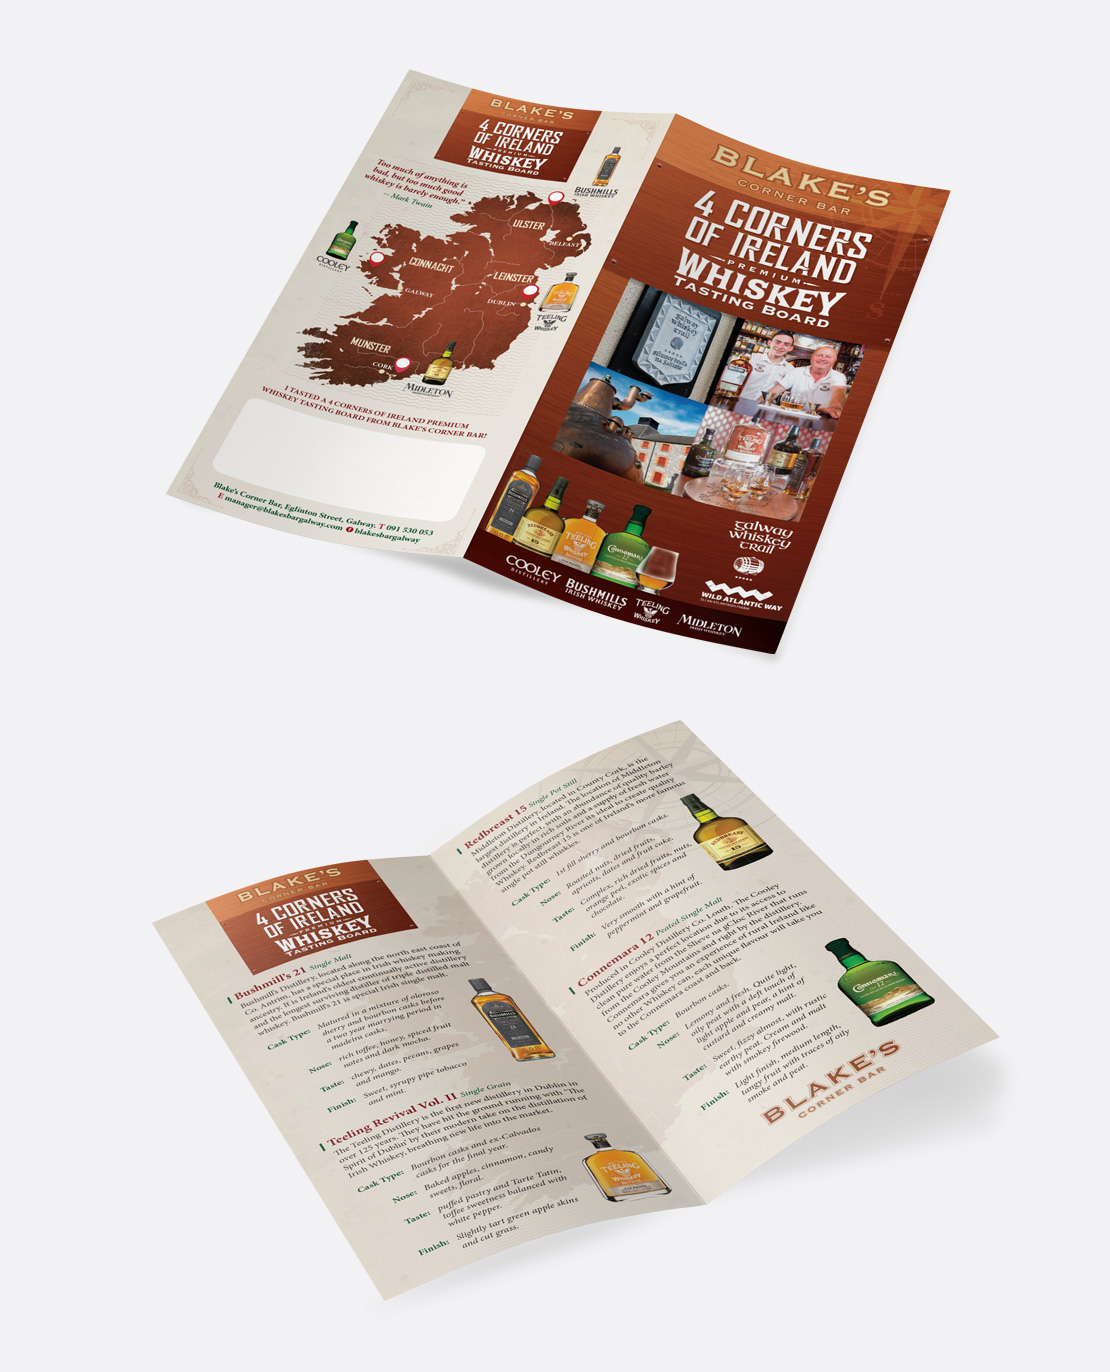 Blake's Corner Bar '4 Corners of Ireland' Whiskey Tasting Board 4-page DL brochure